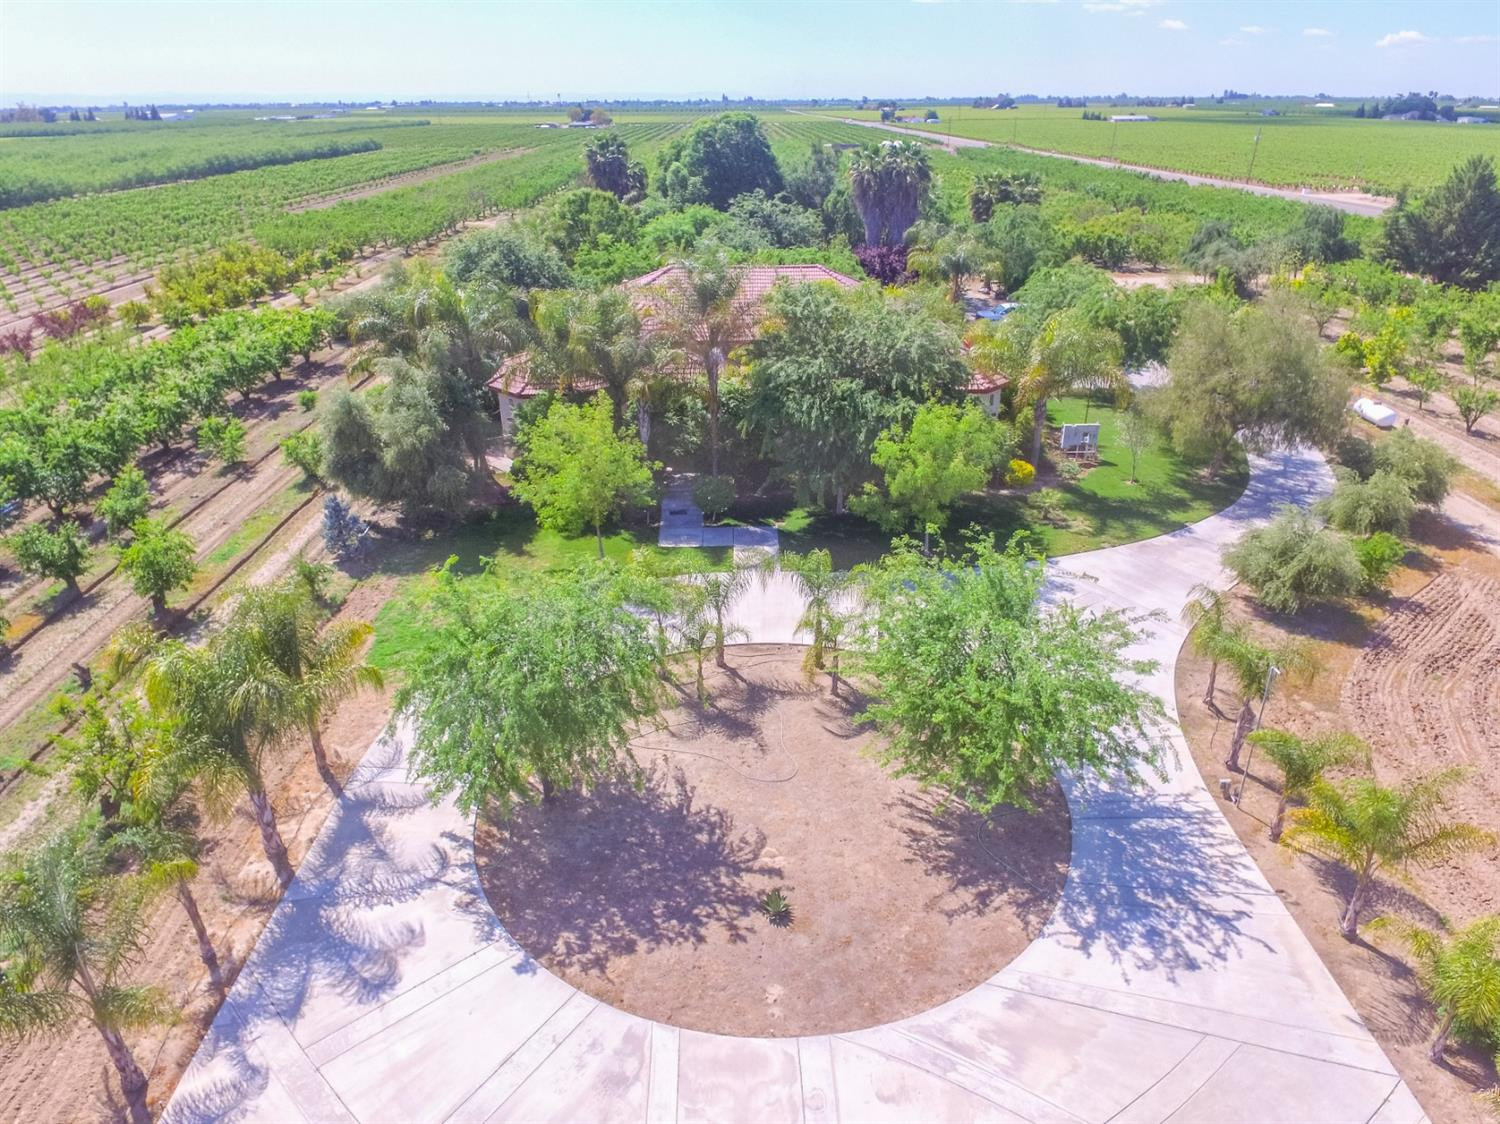 Farms and Ranches for sale in Fresno, California, 521584